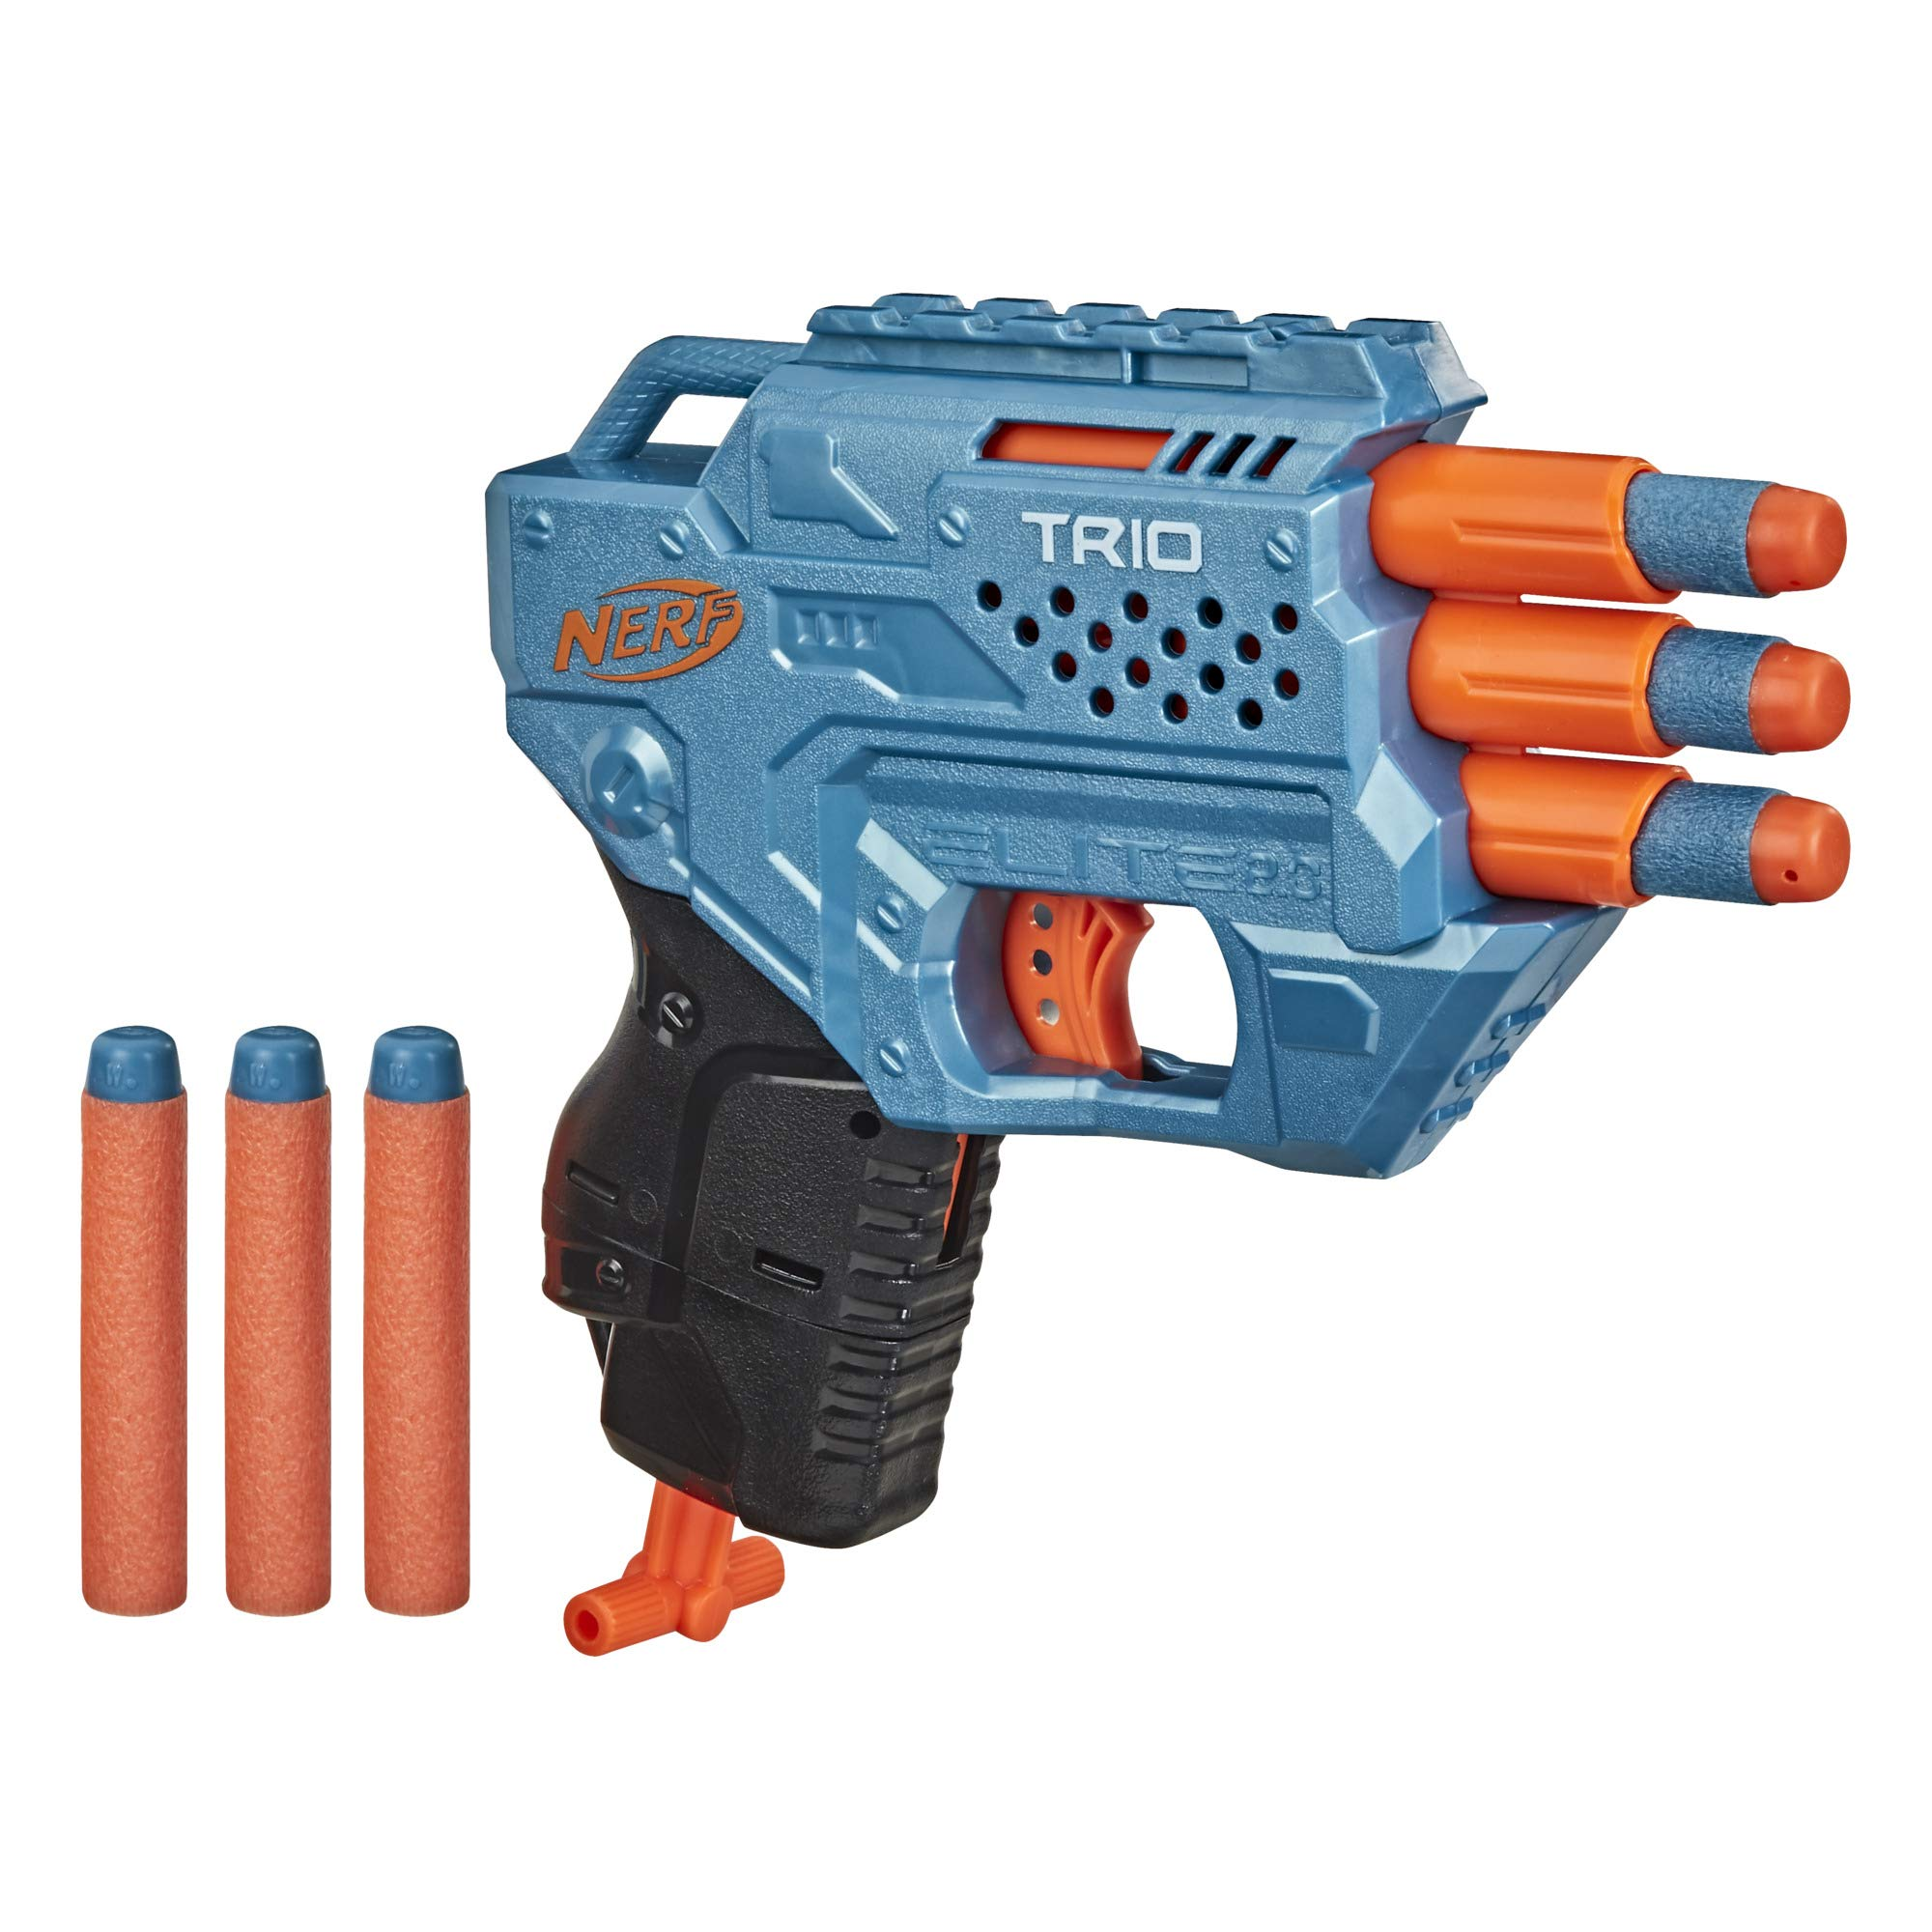 NERF Elite 2.0 Trio SD-3 Blaster -- Includes 6 Official Darts -- 3-Barrel Blasting -- Tactical Rail for Customizing Capability